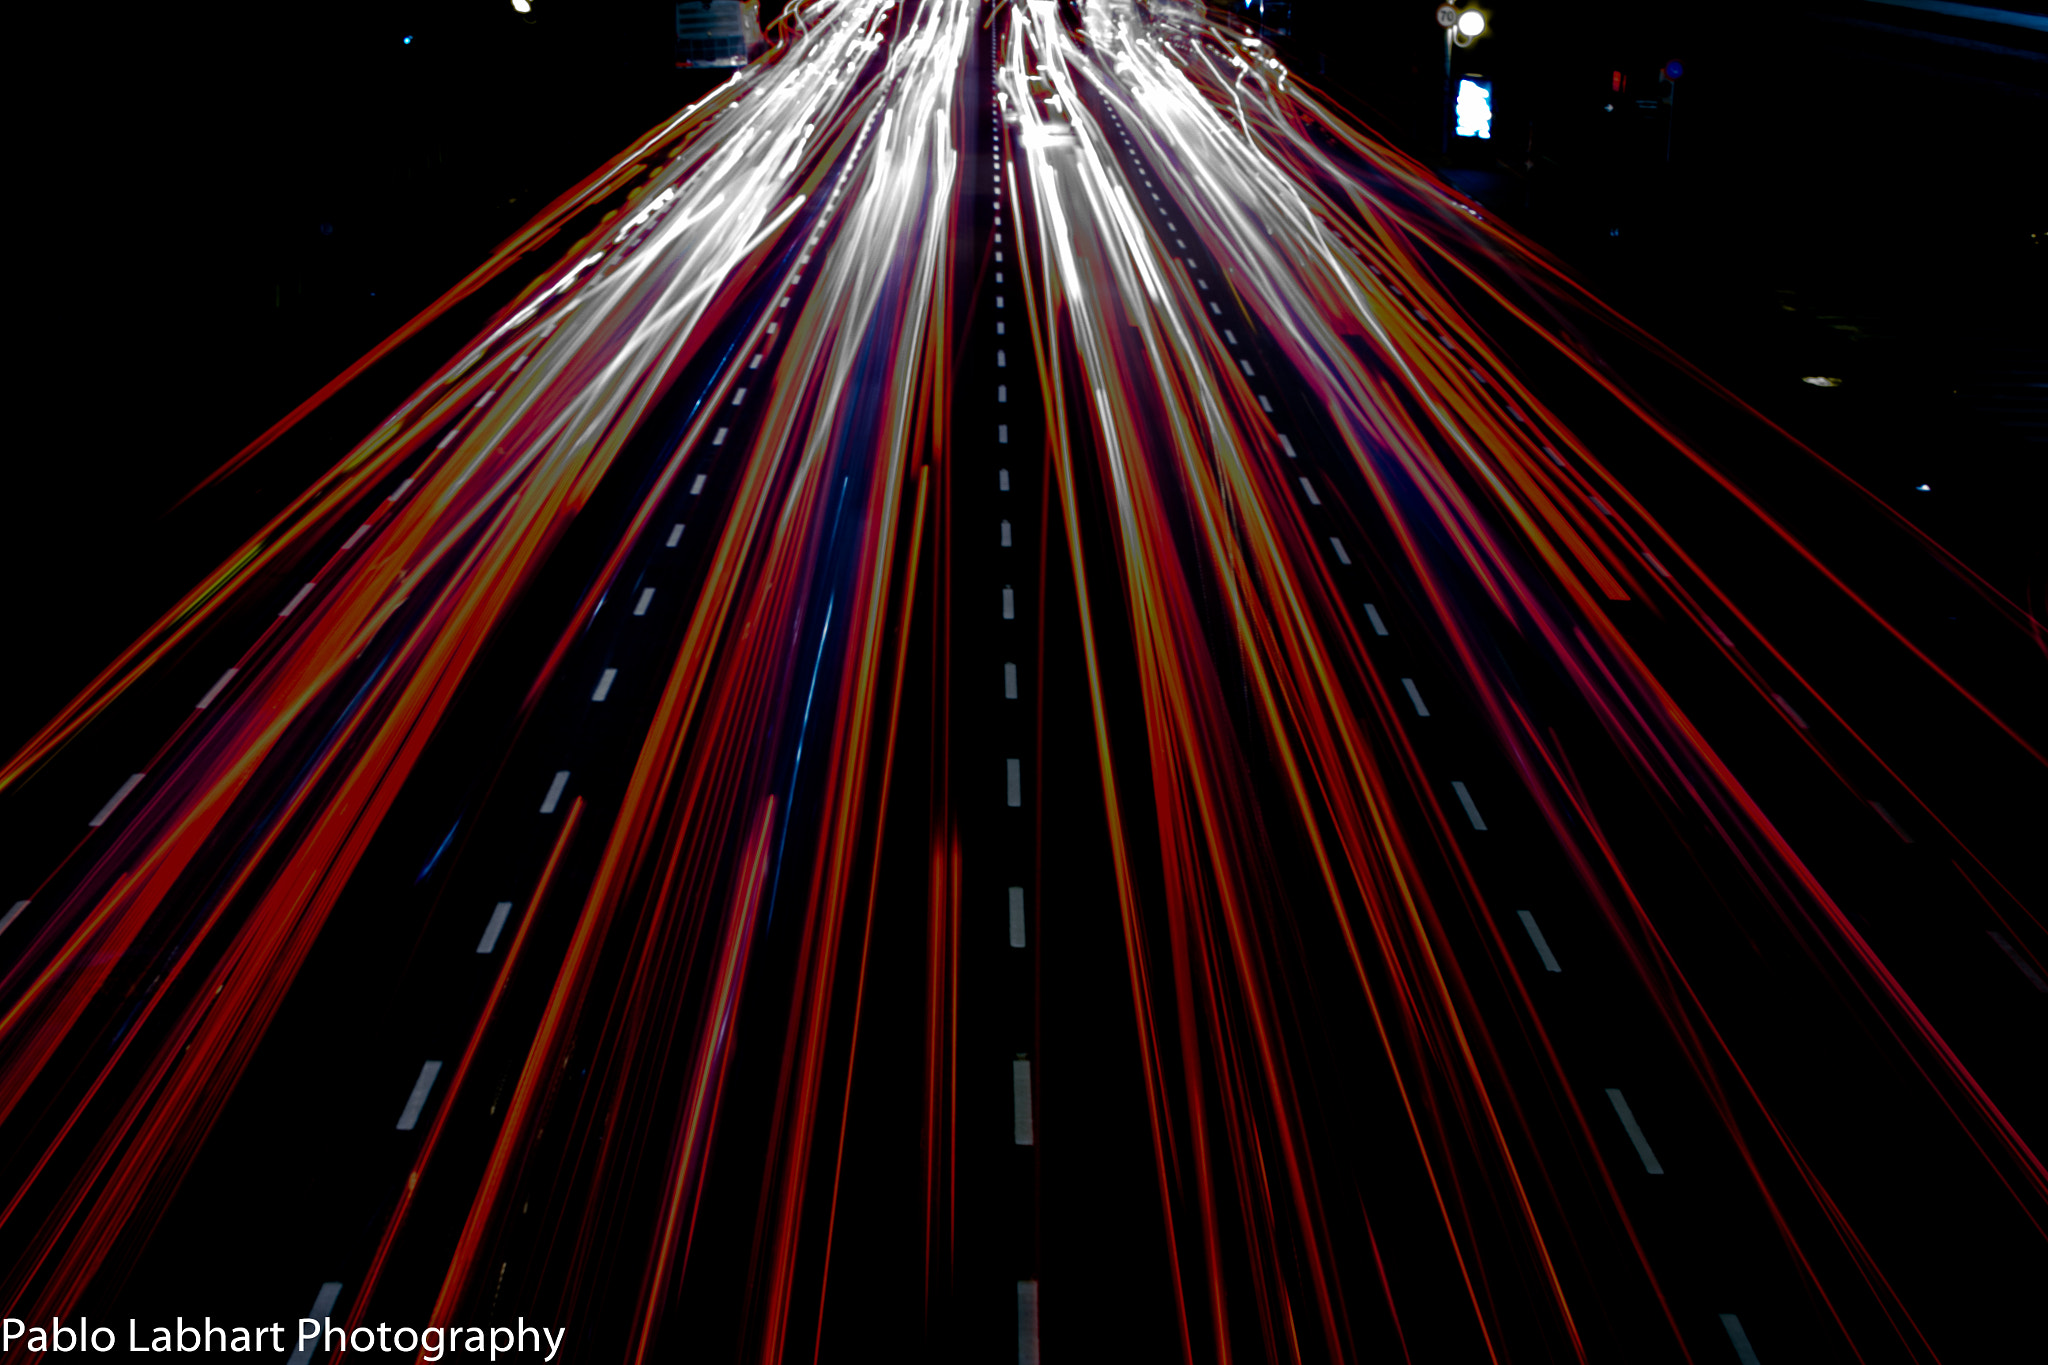 Photograph Car Lights by Pablo Labhart on 500px